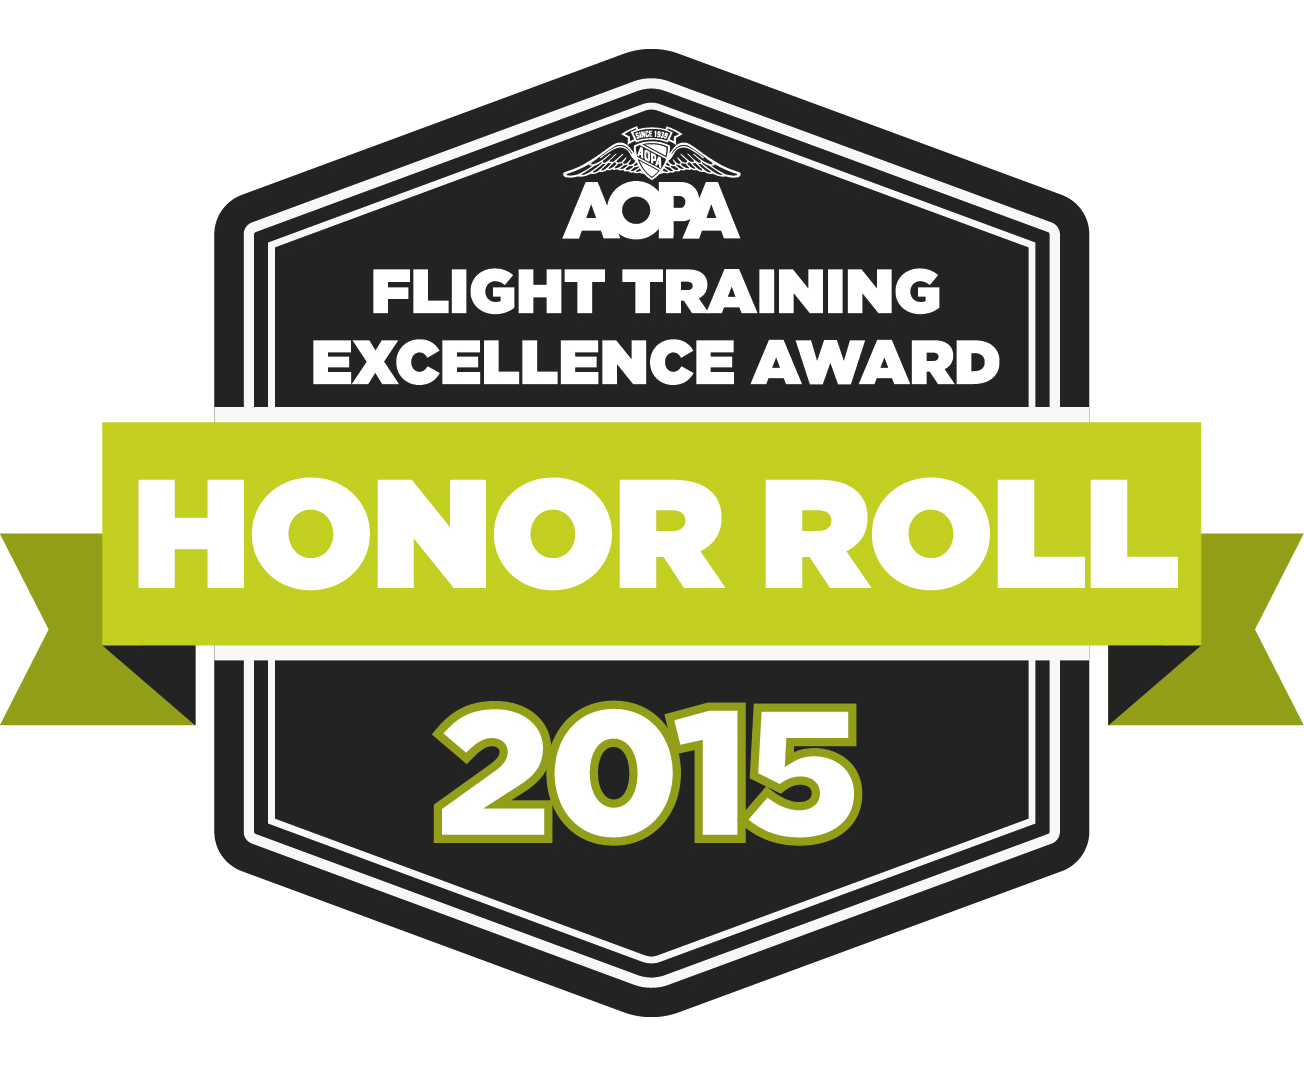 2015 AOPA Honor Roll Flight Training Excellence Award